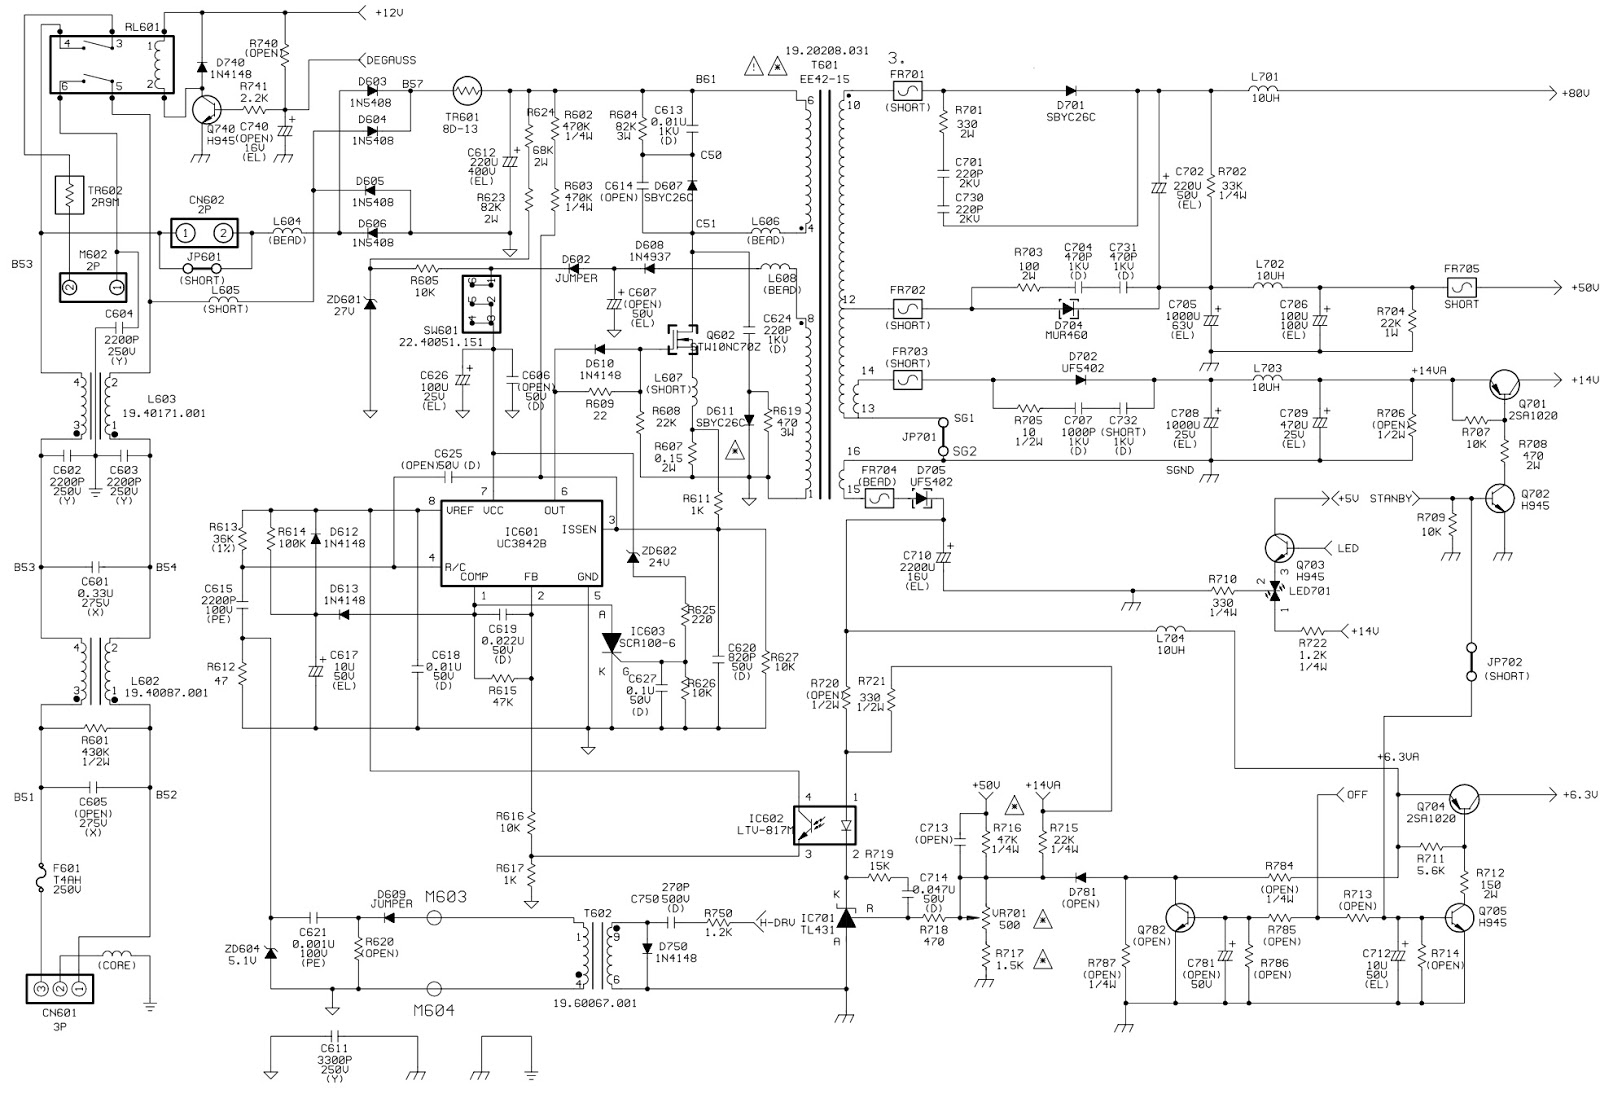 FIG 2 benq, mitsubishi 1786fd2 diamond view crt monitor circuit monitor wiring diagram for cat 320l excavator at couponss.co